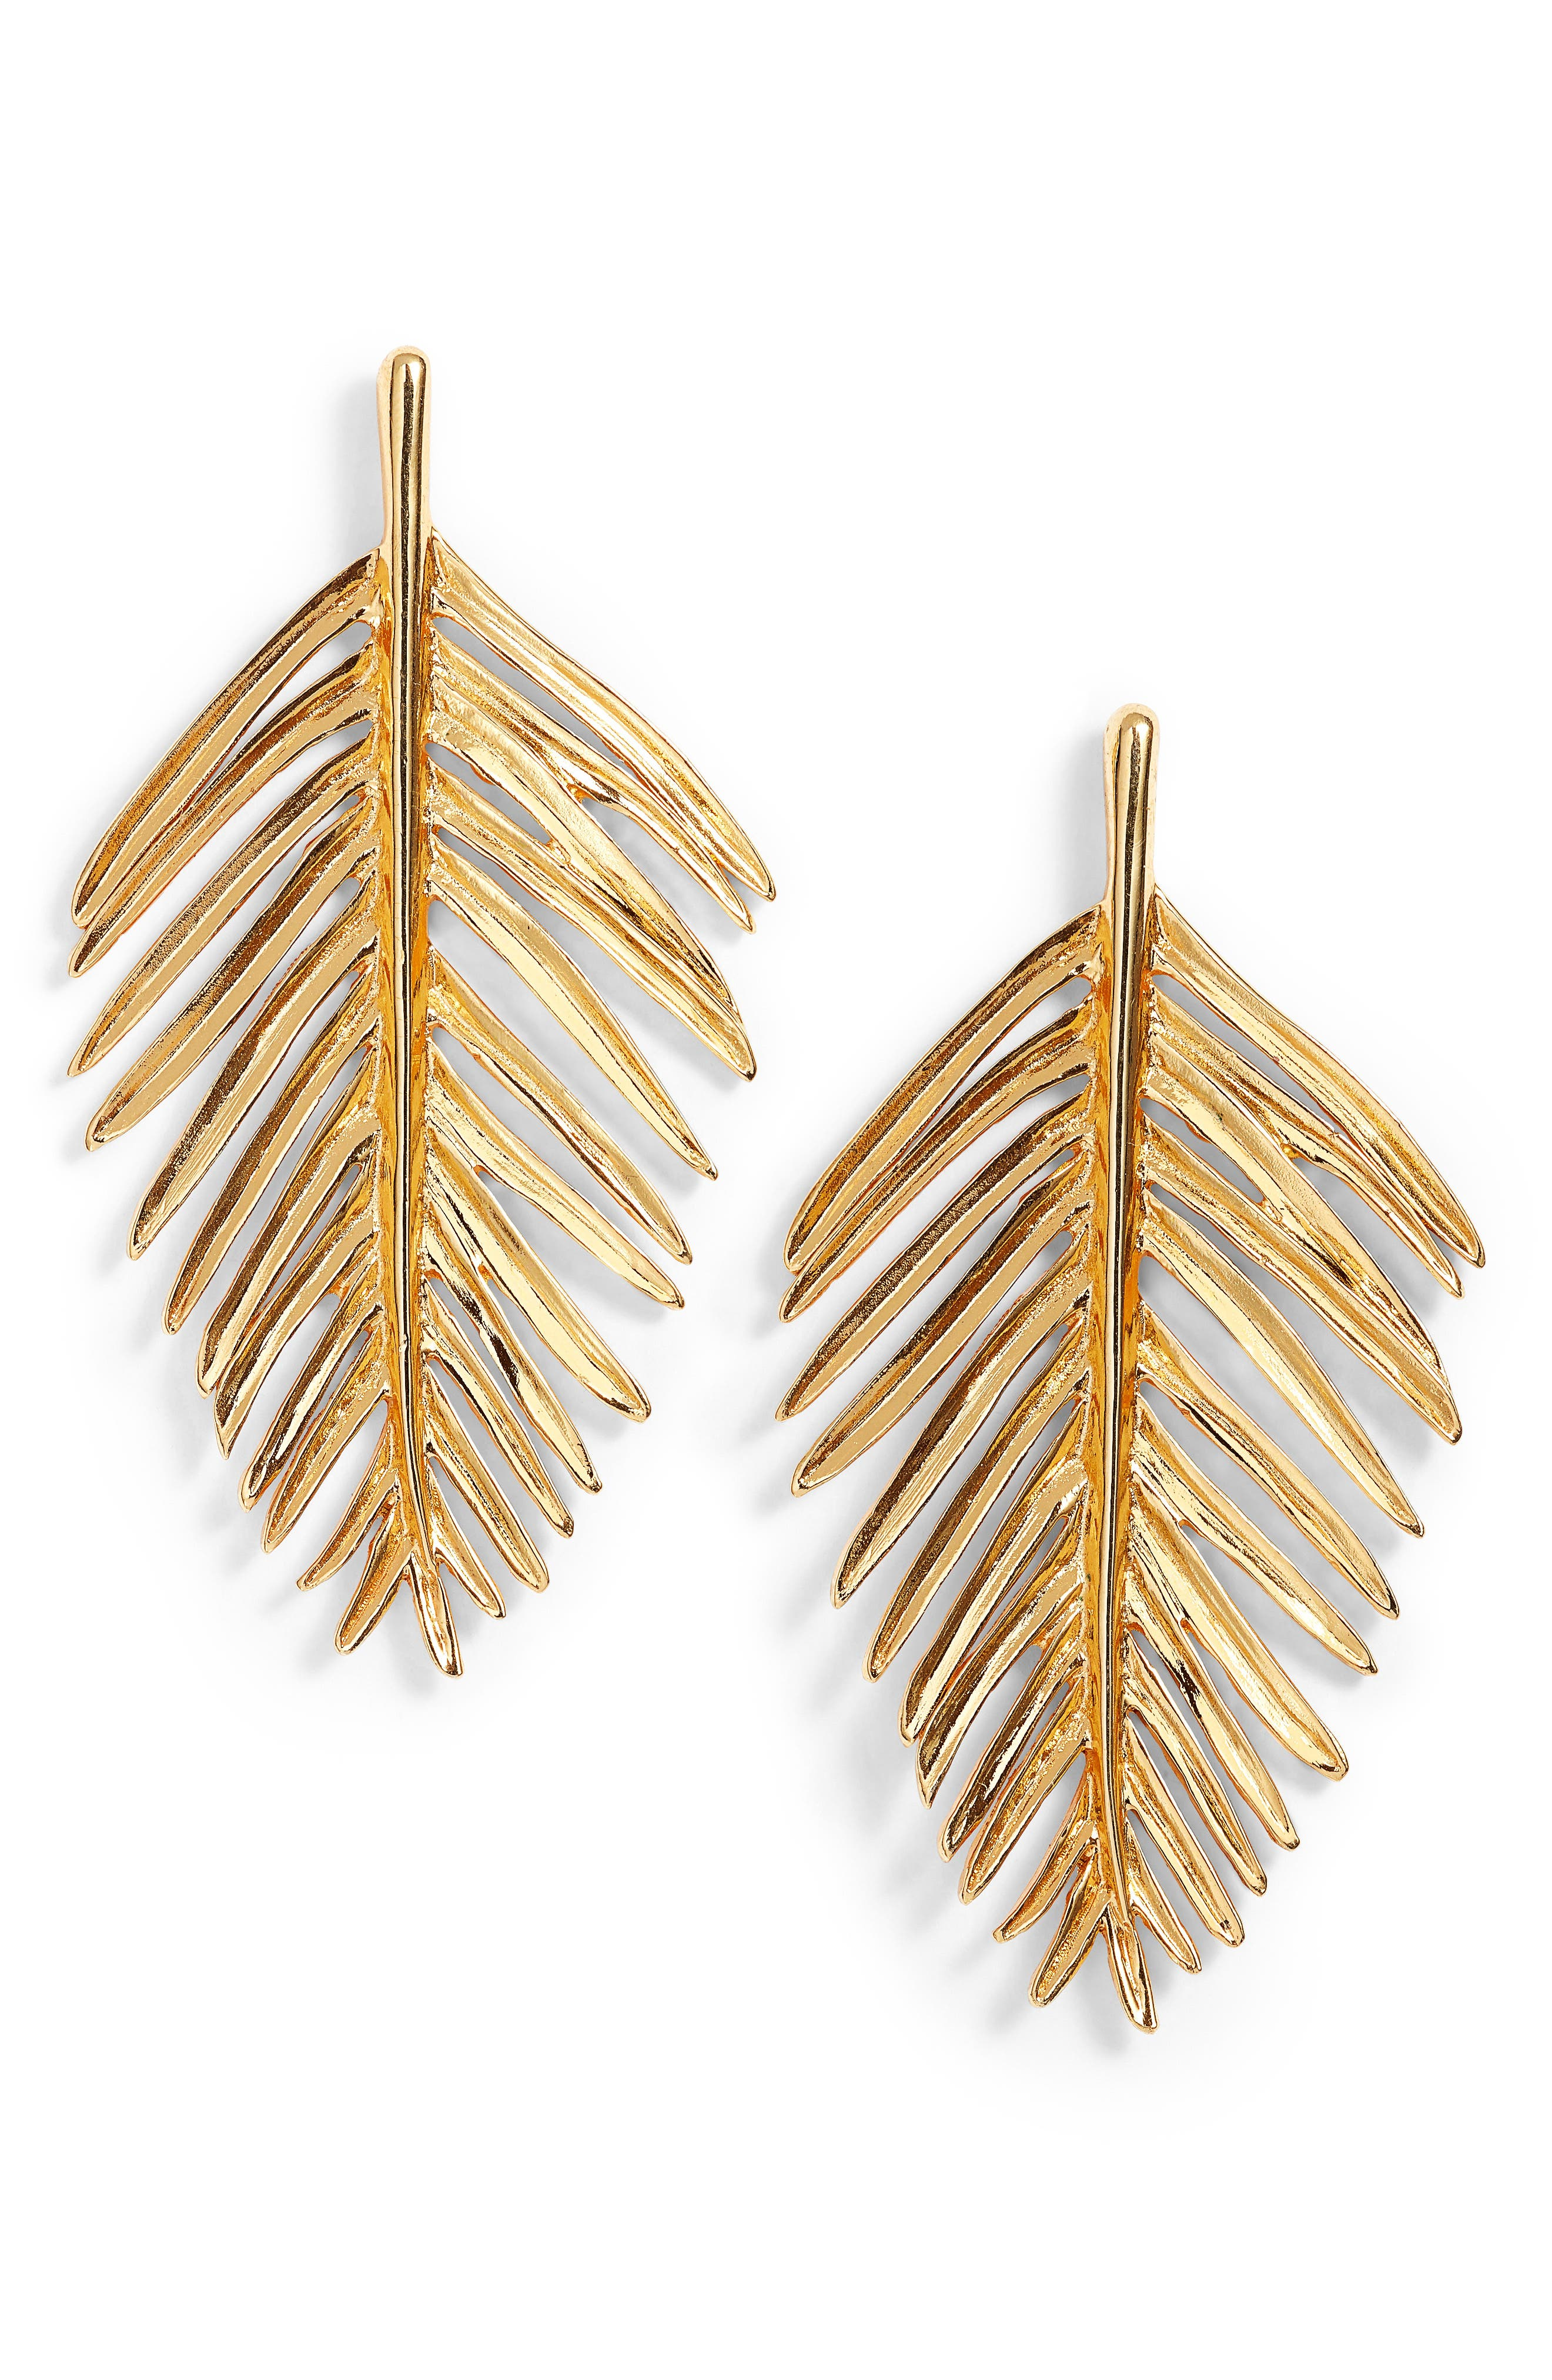 Alternate Image 1 Selected - Oscar de la Renta Leaf Drop Earrings